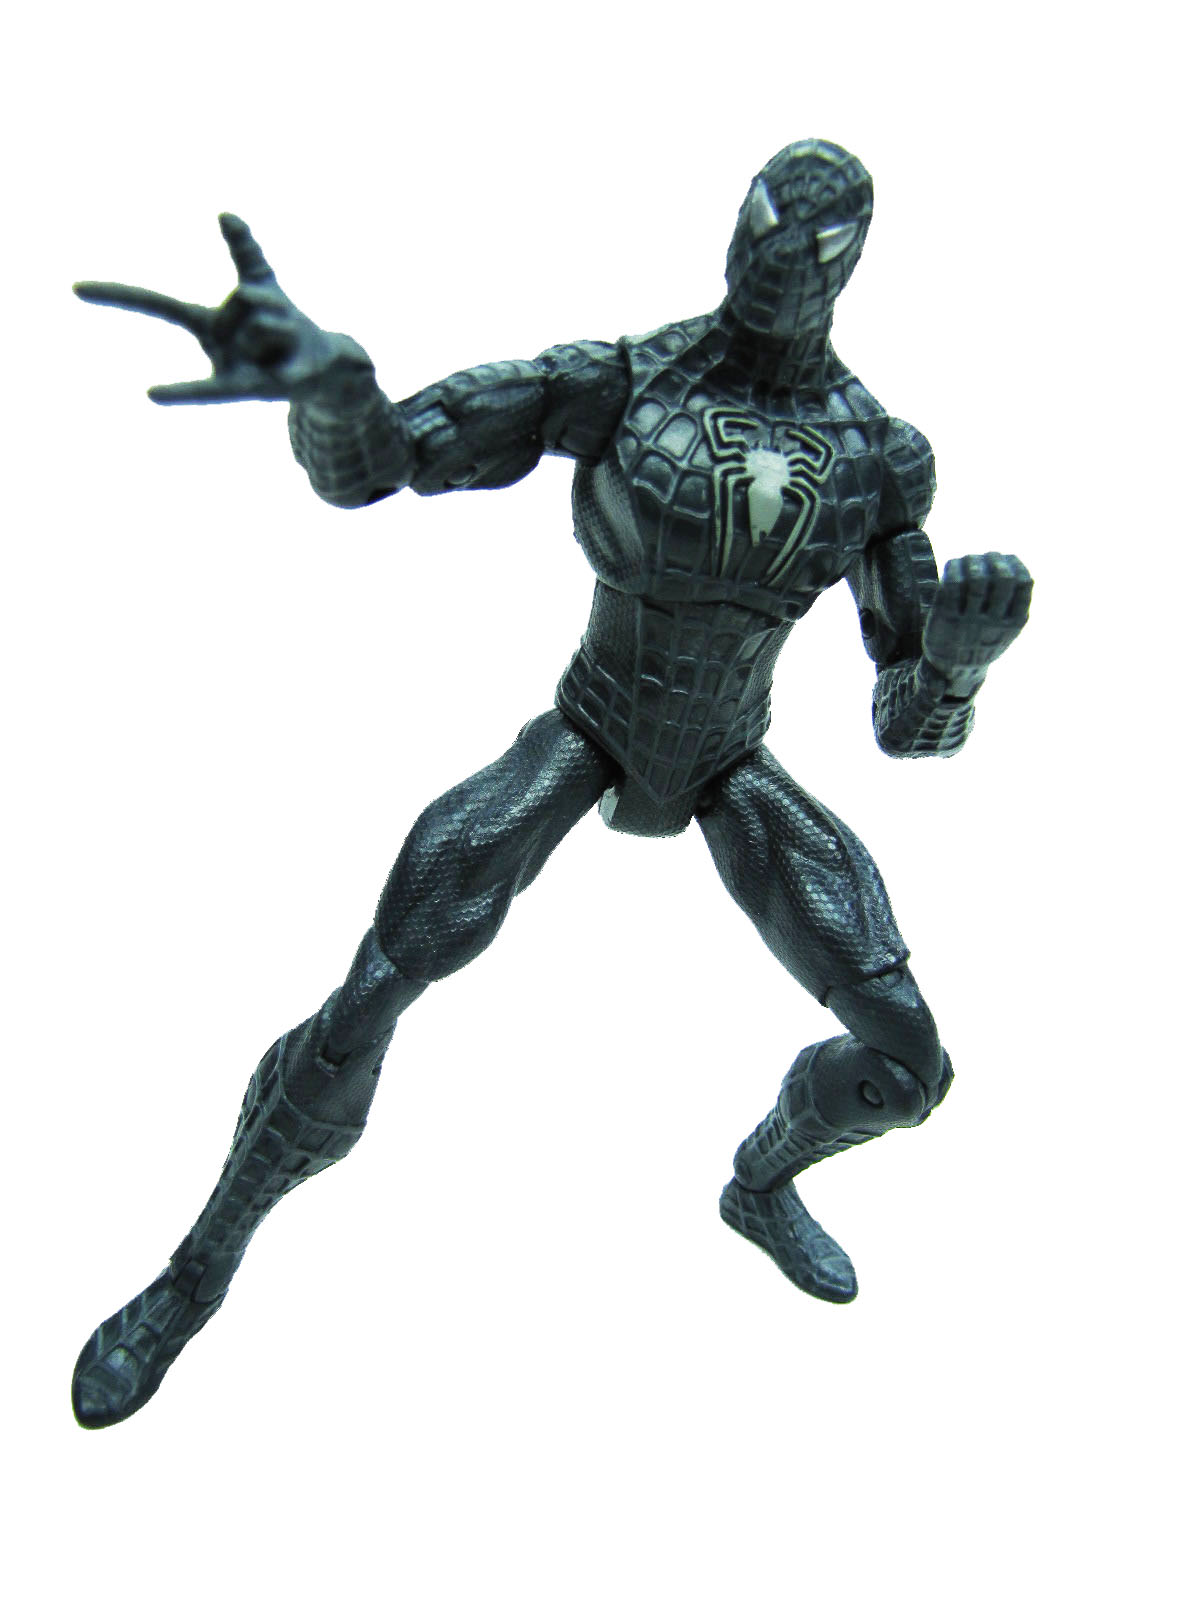 Spider-Man Movie Series Black Suit Spider-Man Complete